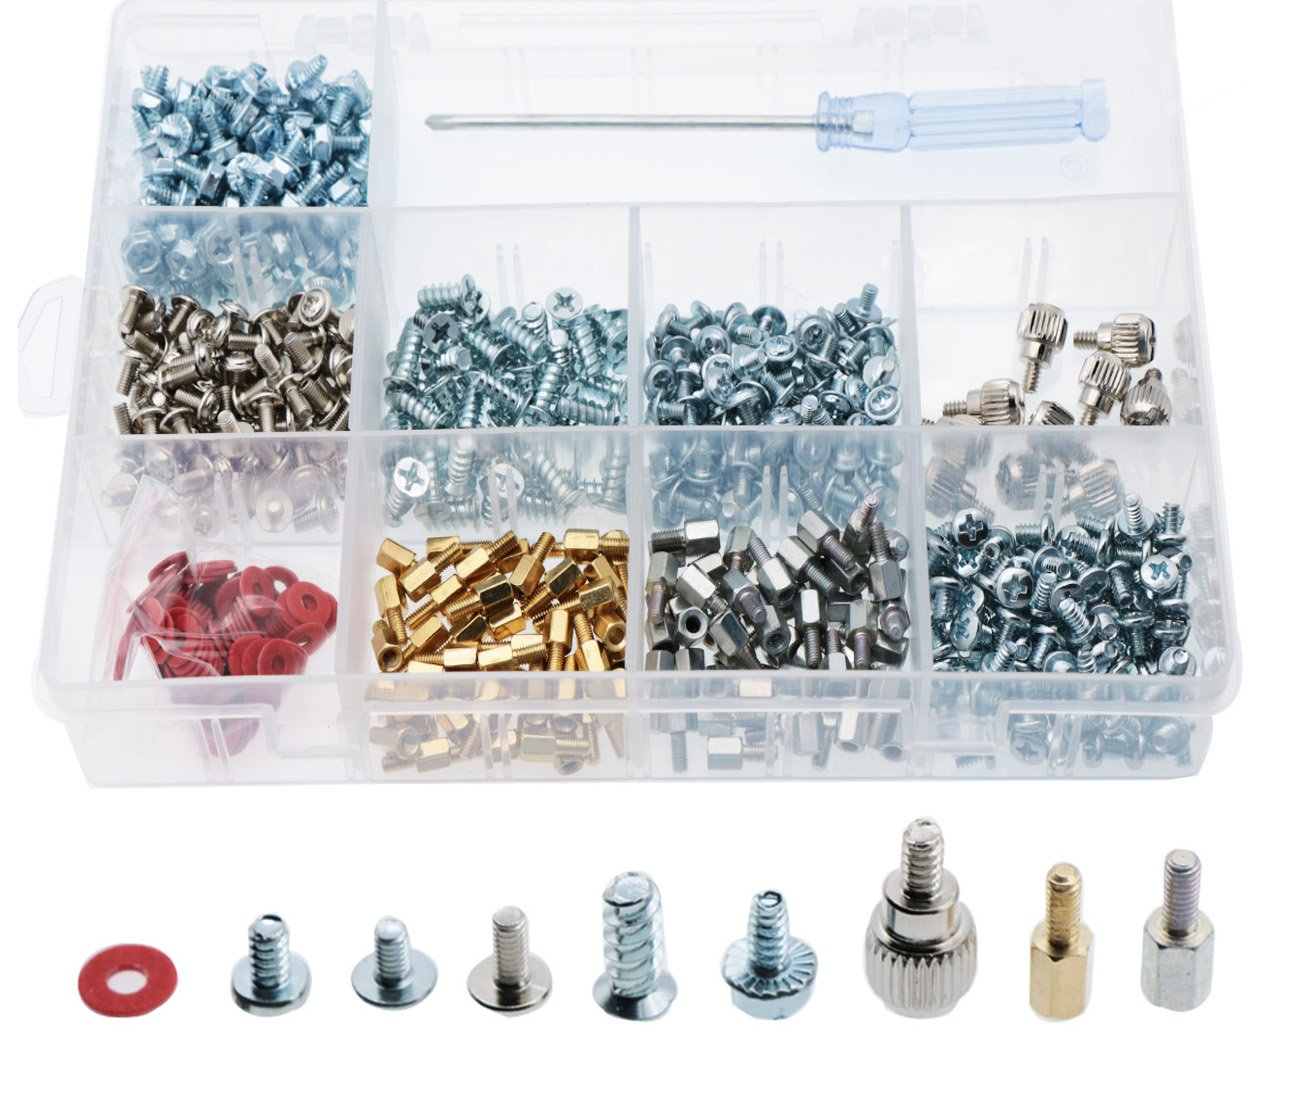 CO RODE 660pcs Phillips Head Computer PC Spacer Screws Assortment Kit for Case Hard Drive Motherboard Fan Power Graphics (Screwdriver Included)